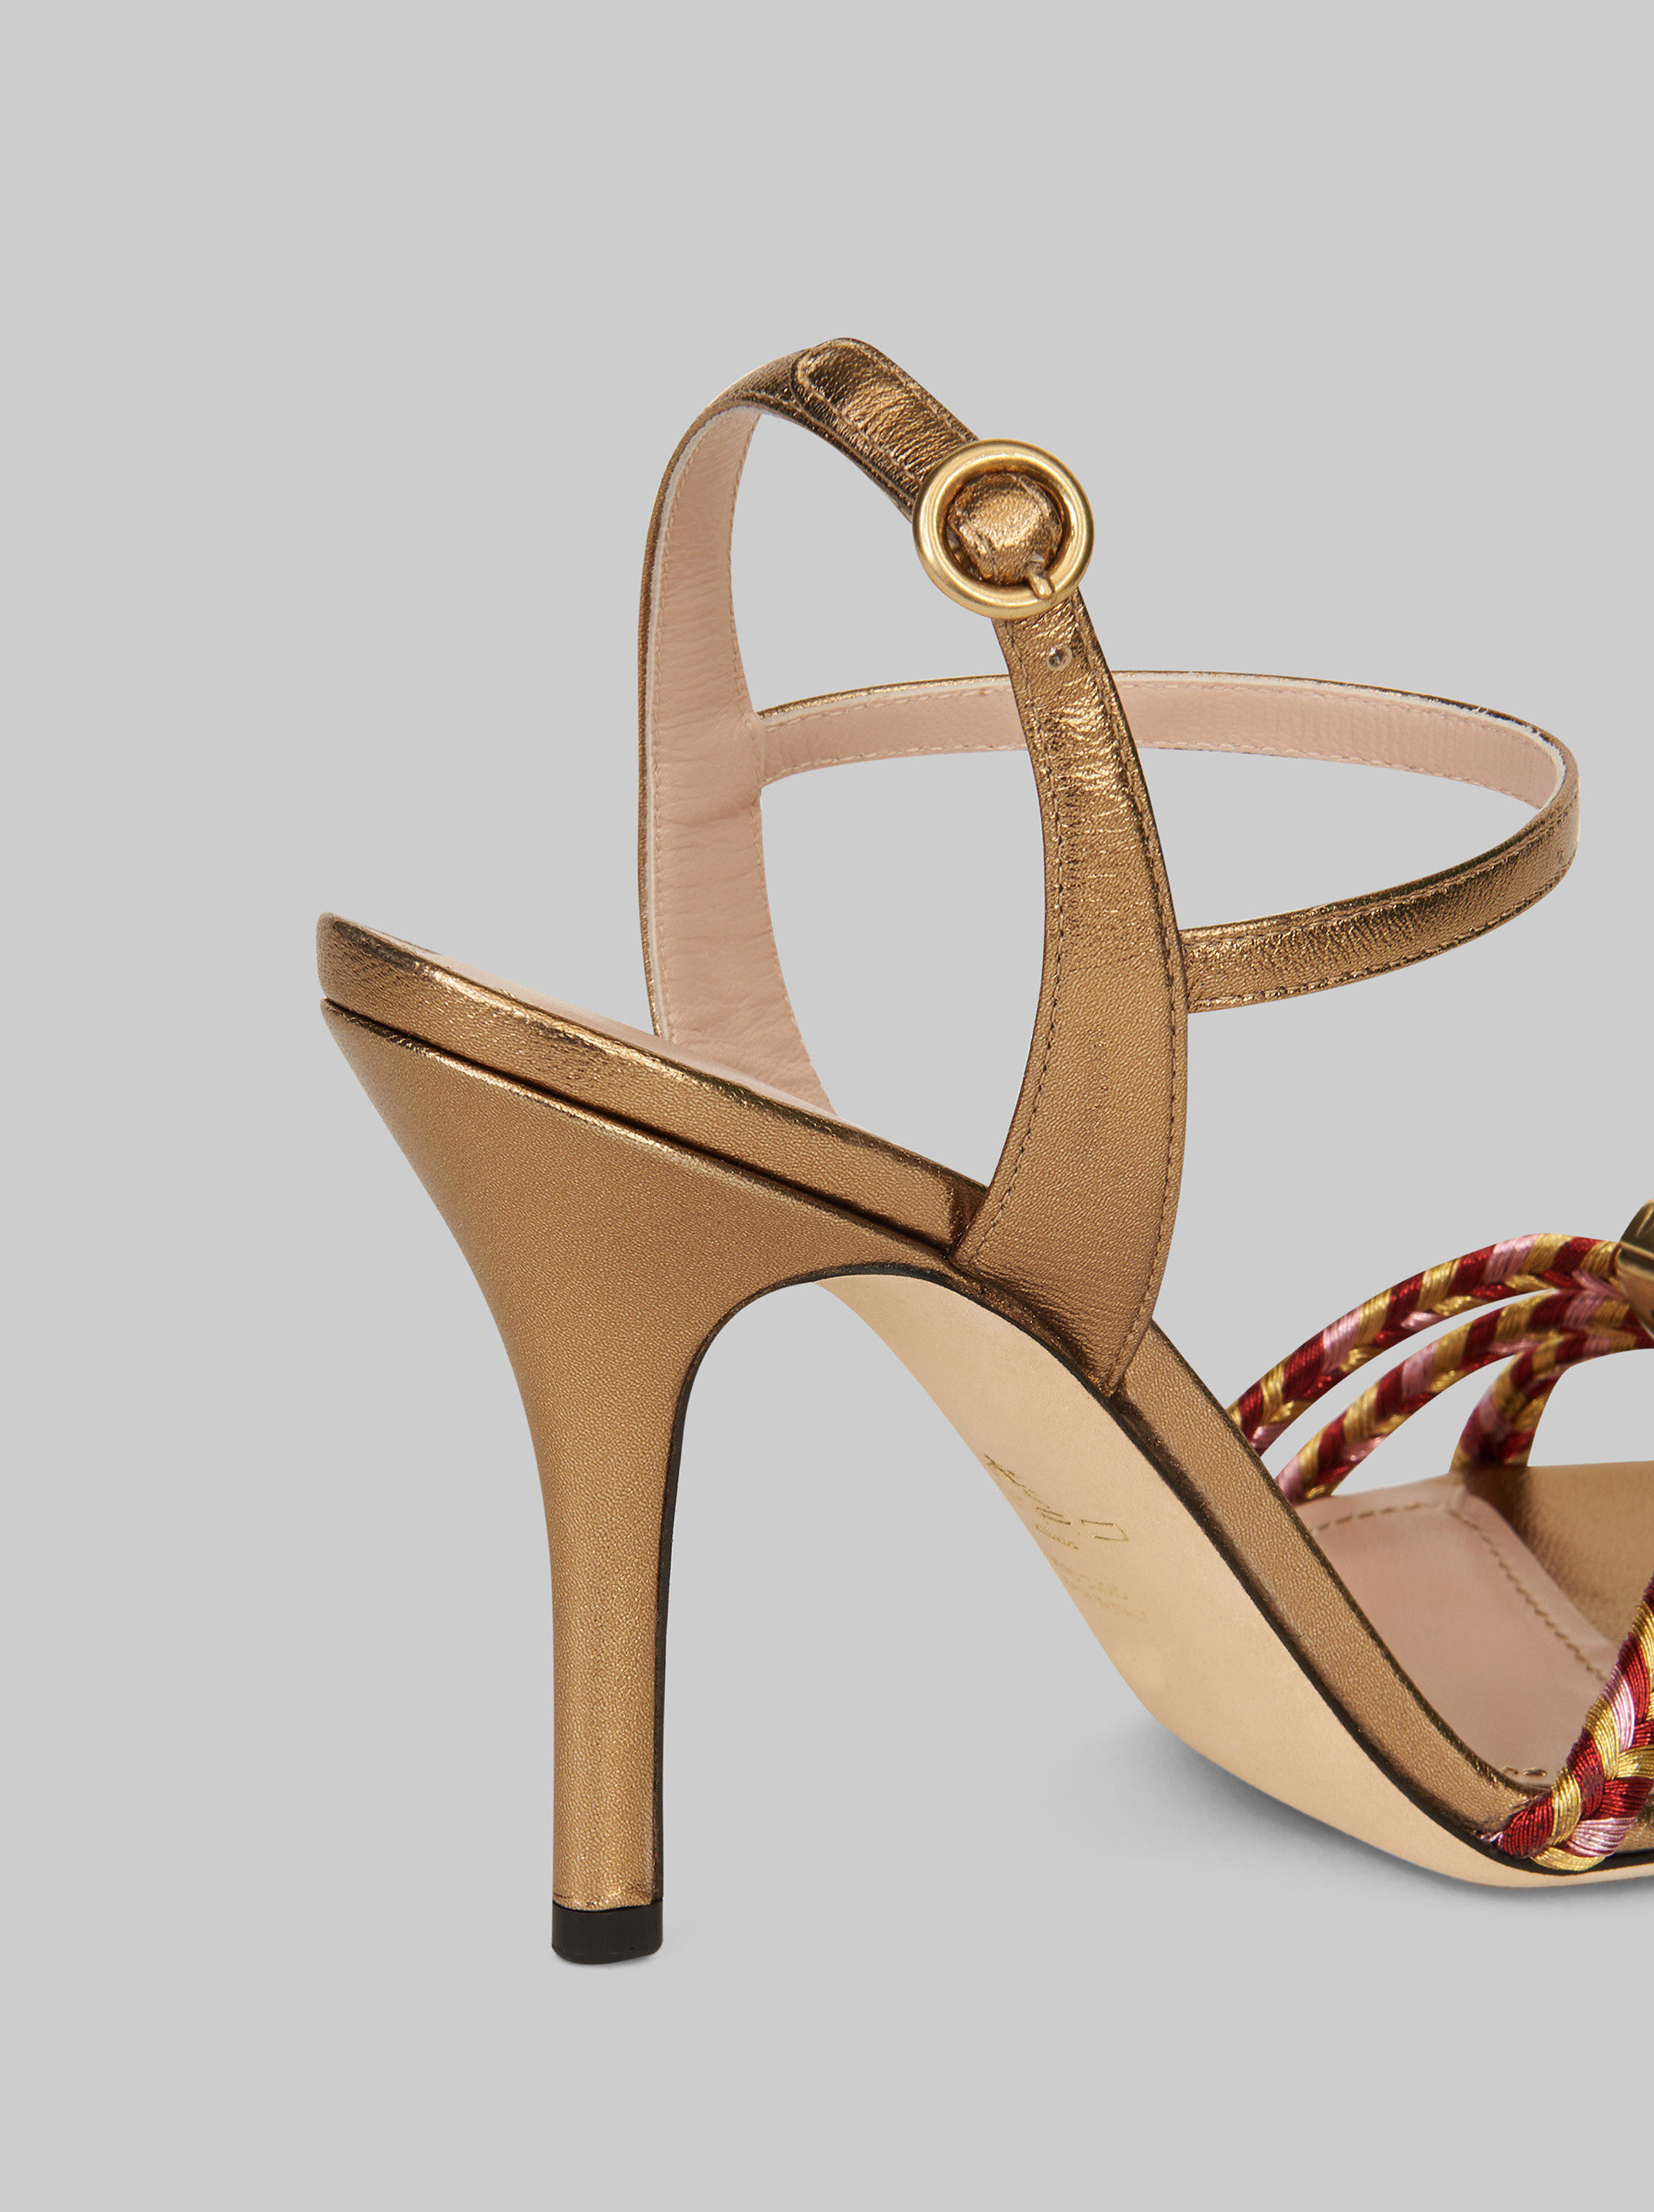 BRAIDED SANDALS WITH JEWEL DETAILING